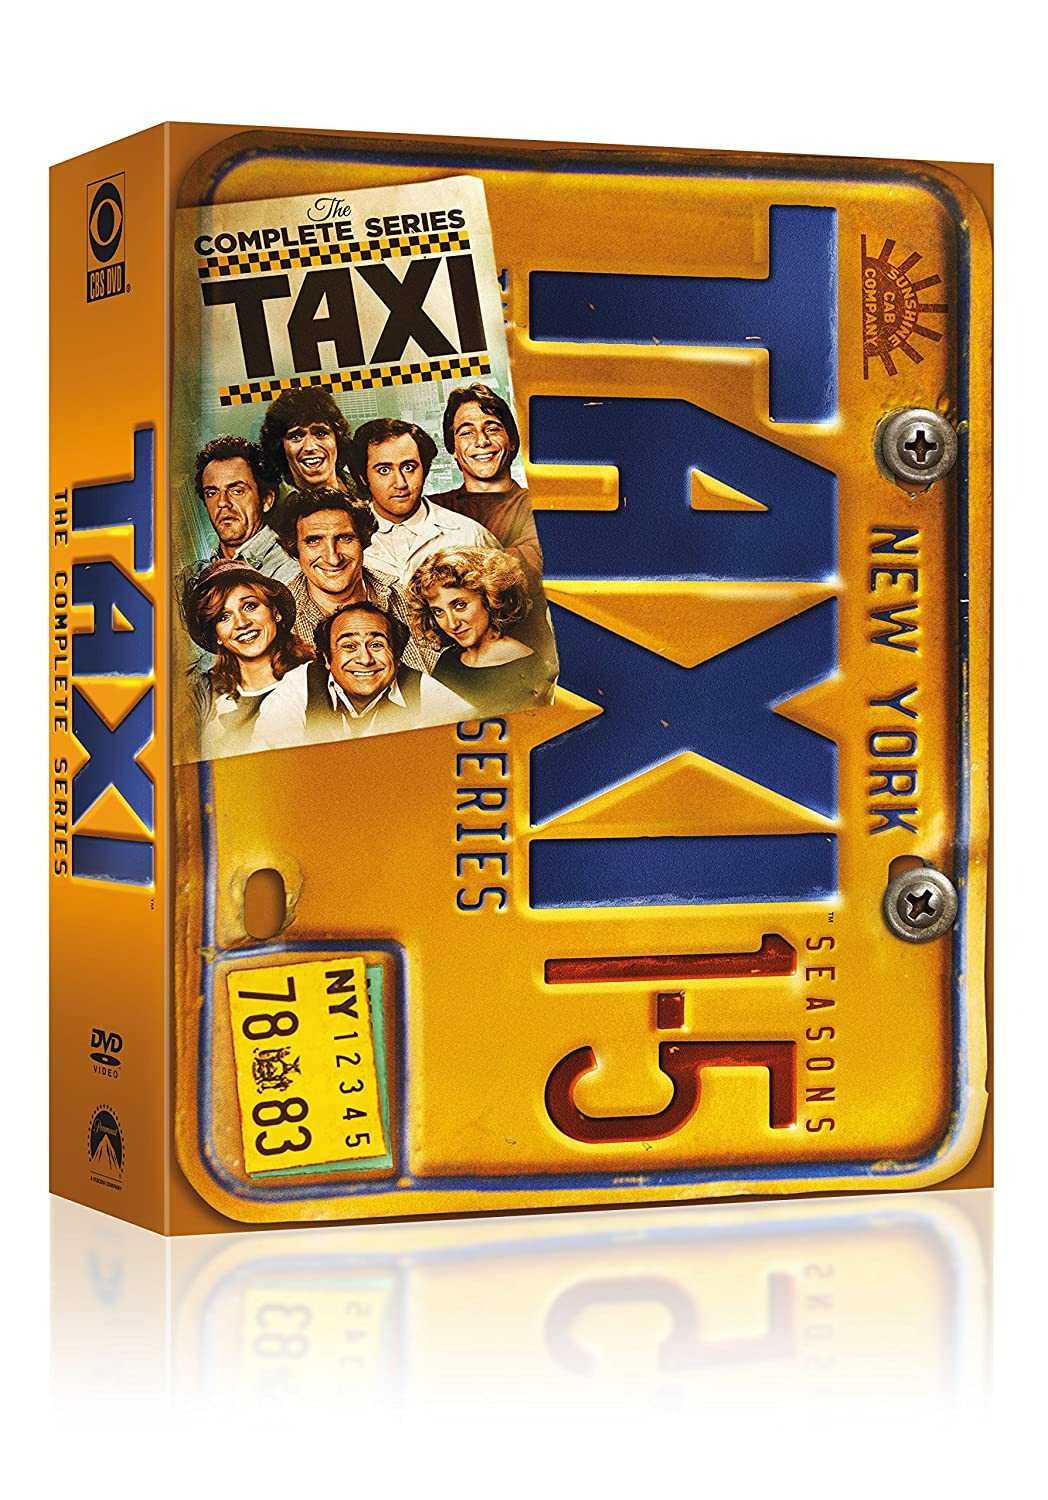 taxi complete danny devito tv series seasons 1 2 3 4 5 boxed dvd set new 32429206503 ebay. Black Bedroom Furniture Sets. Home Design Ideas